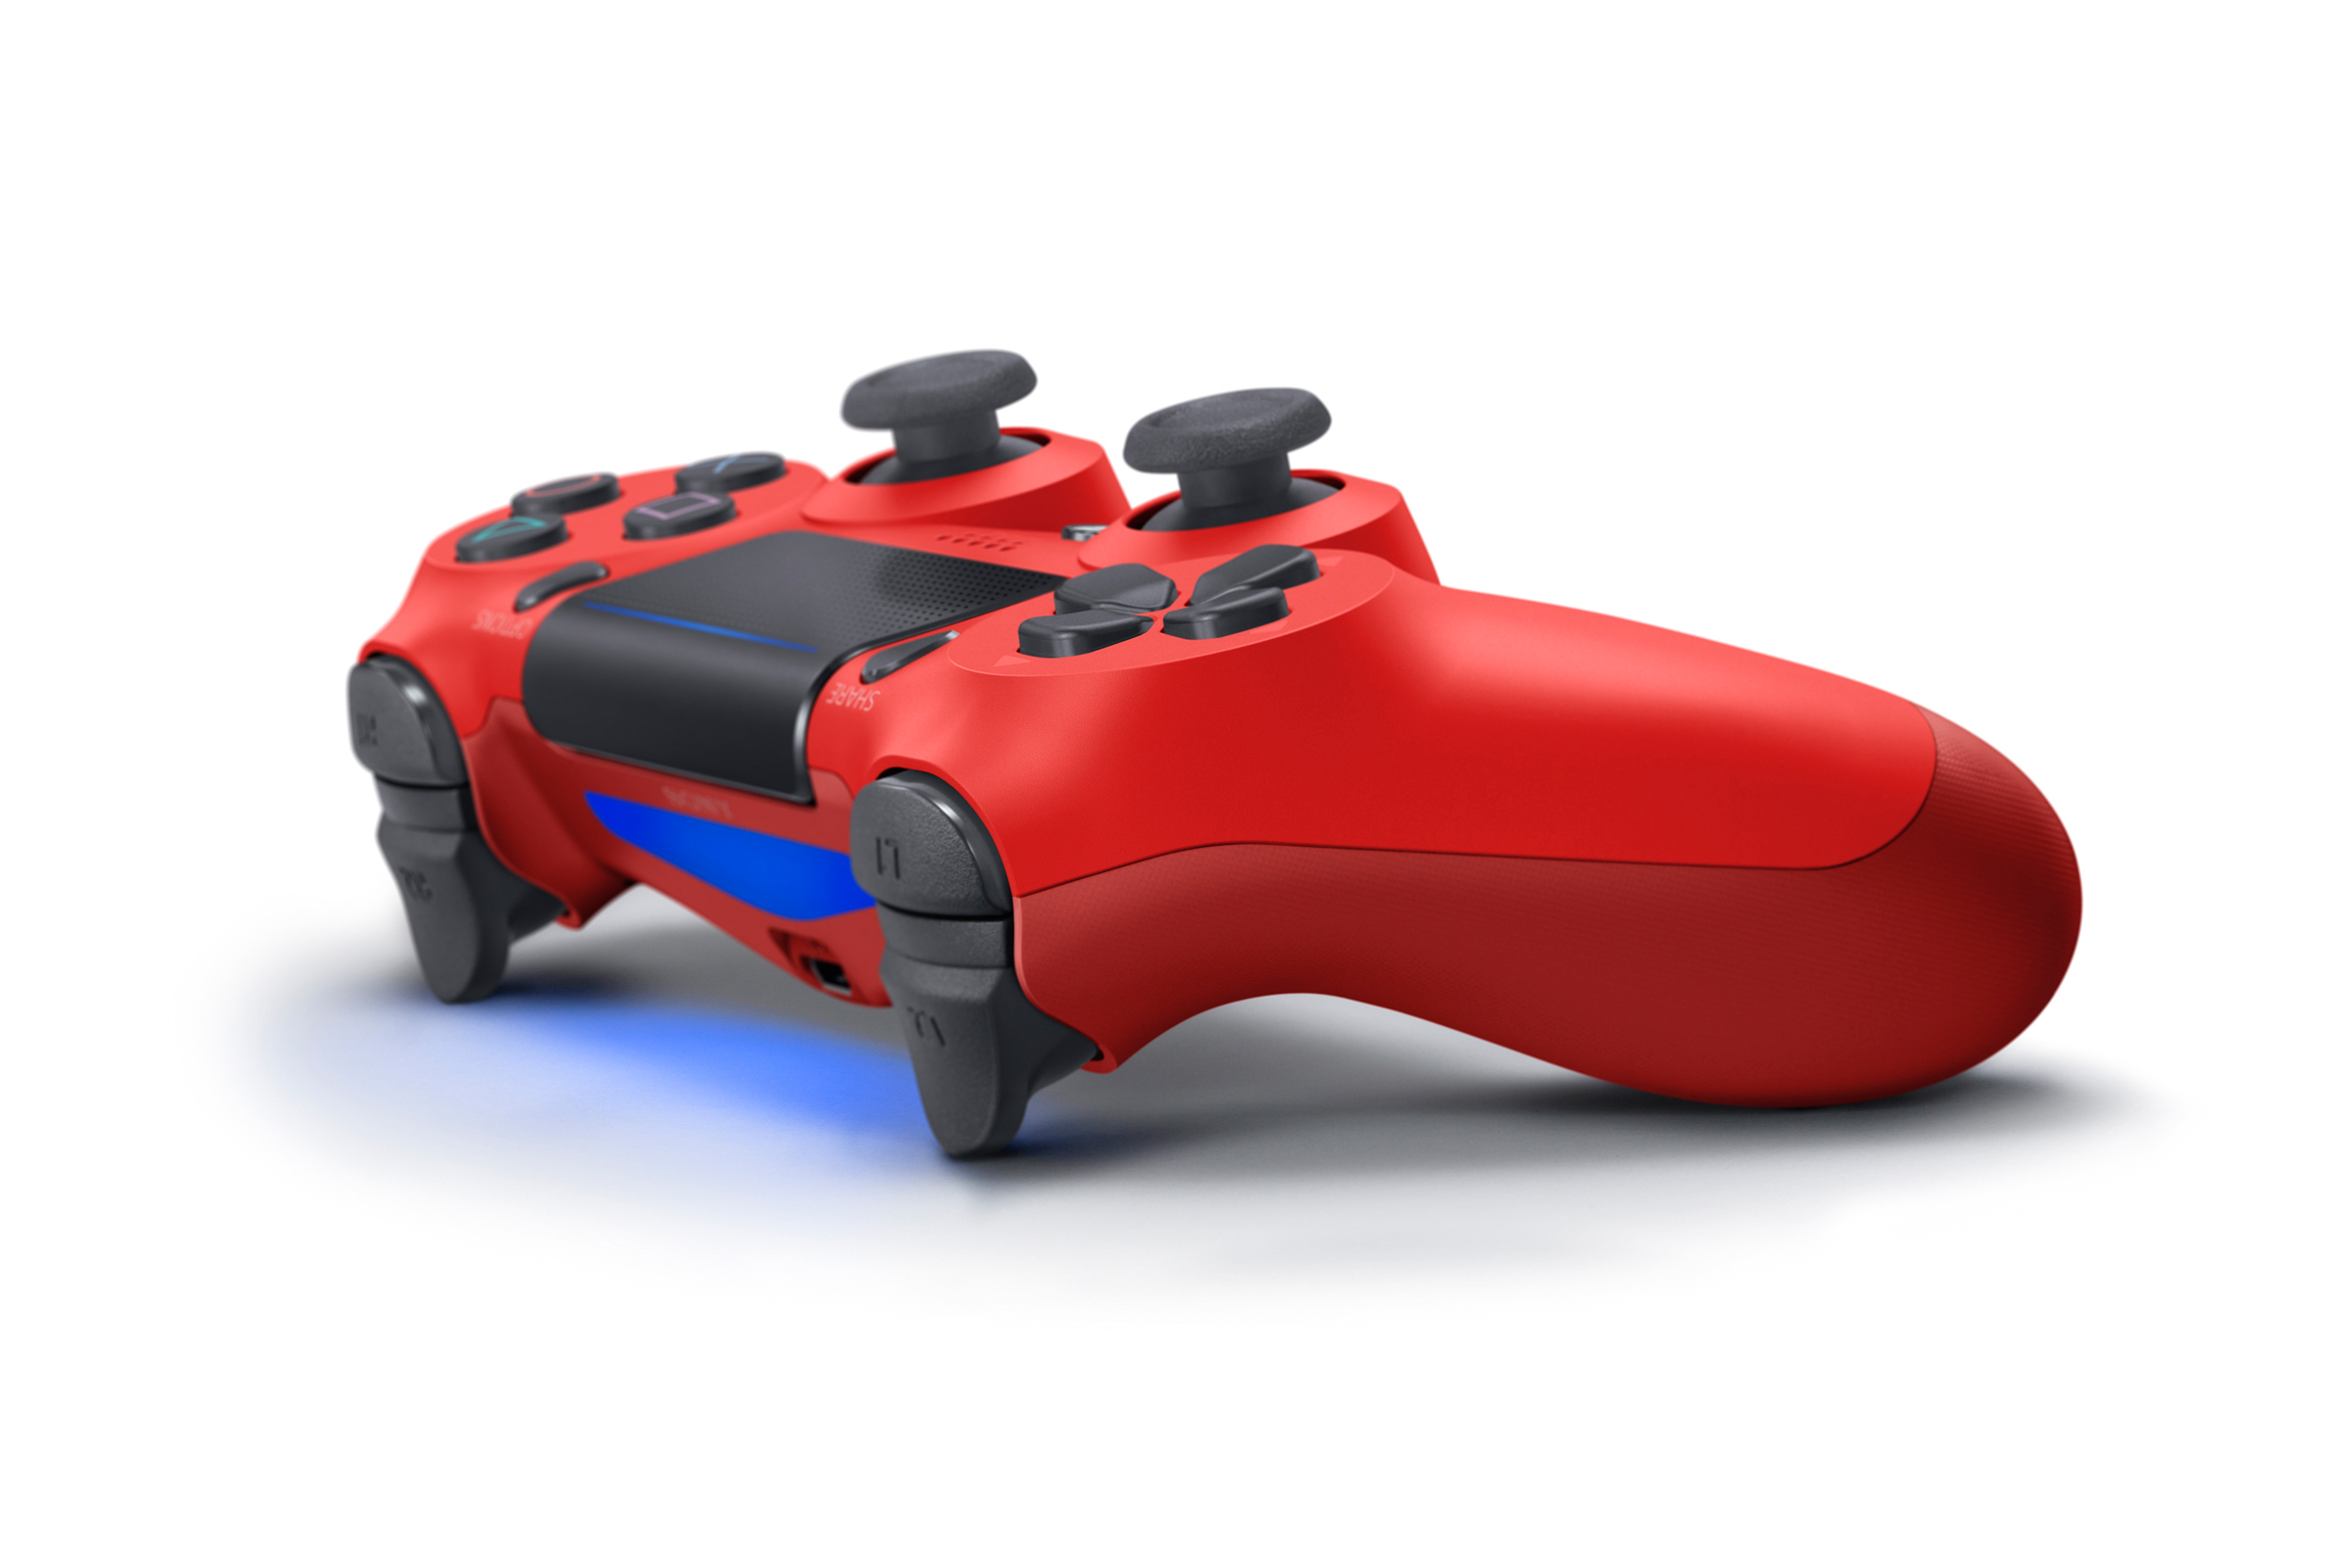 why does the ps4 controller light change colors